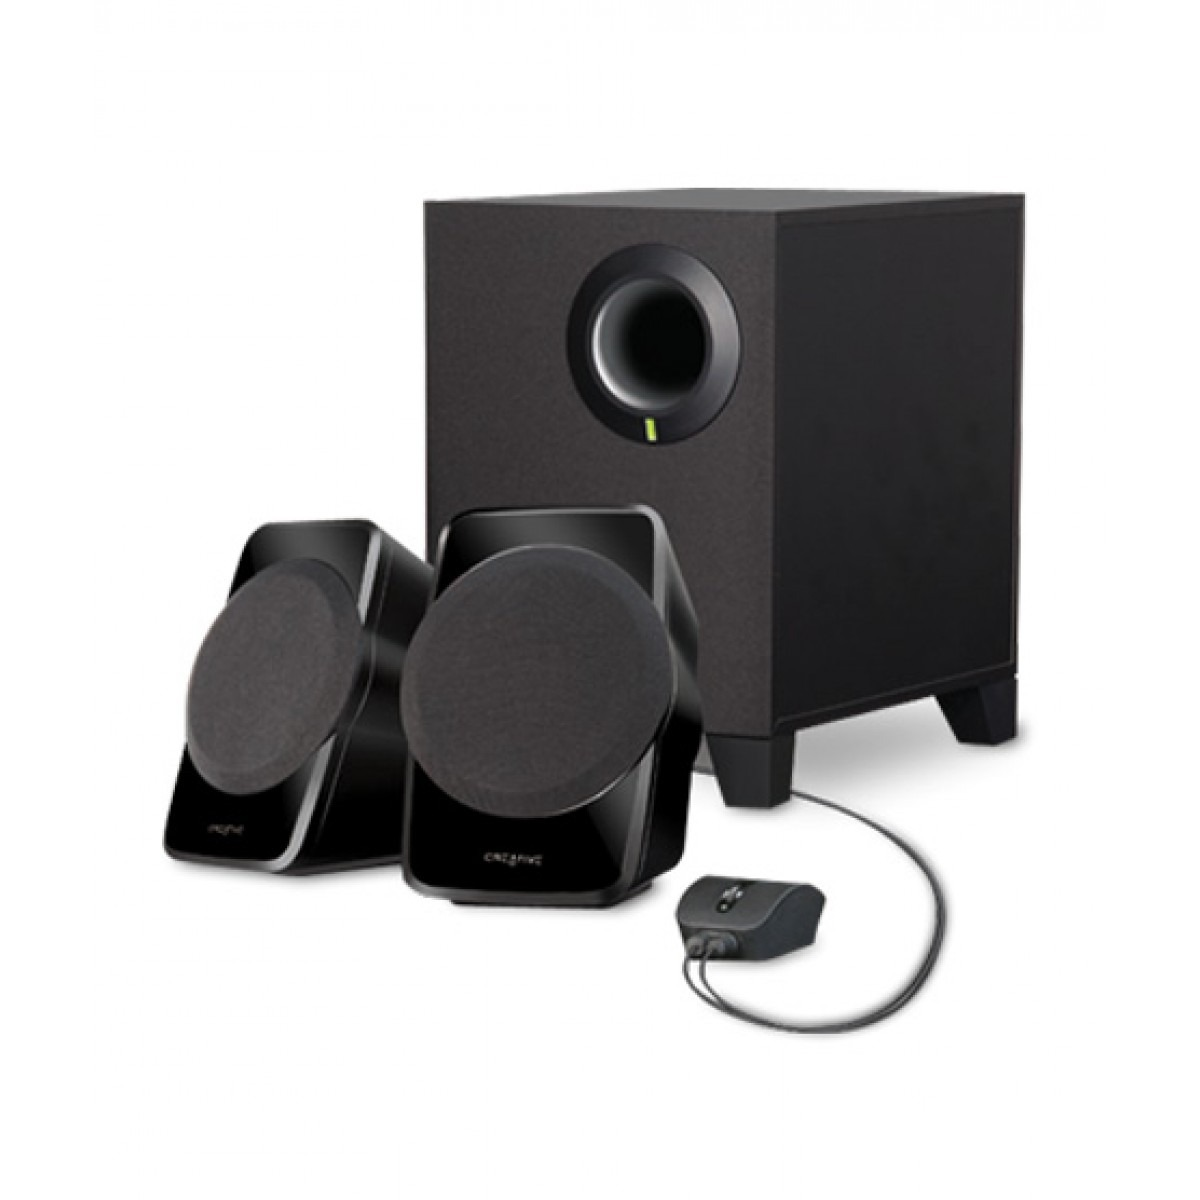 Creative A120 2.1 Speaker System